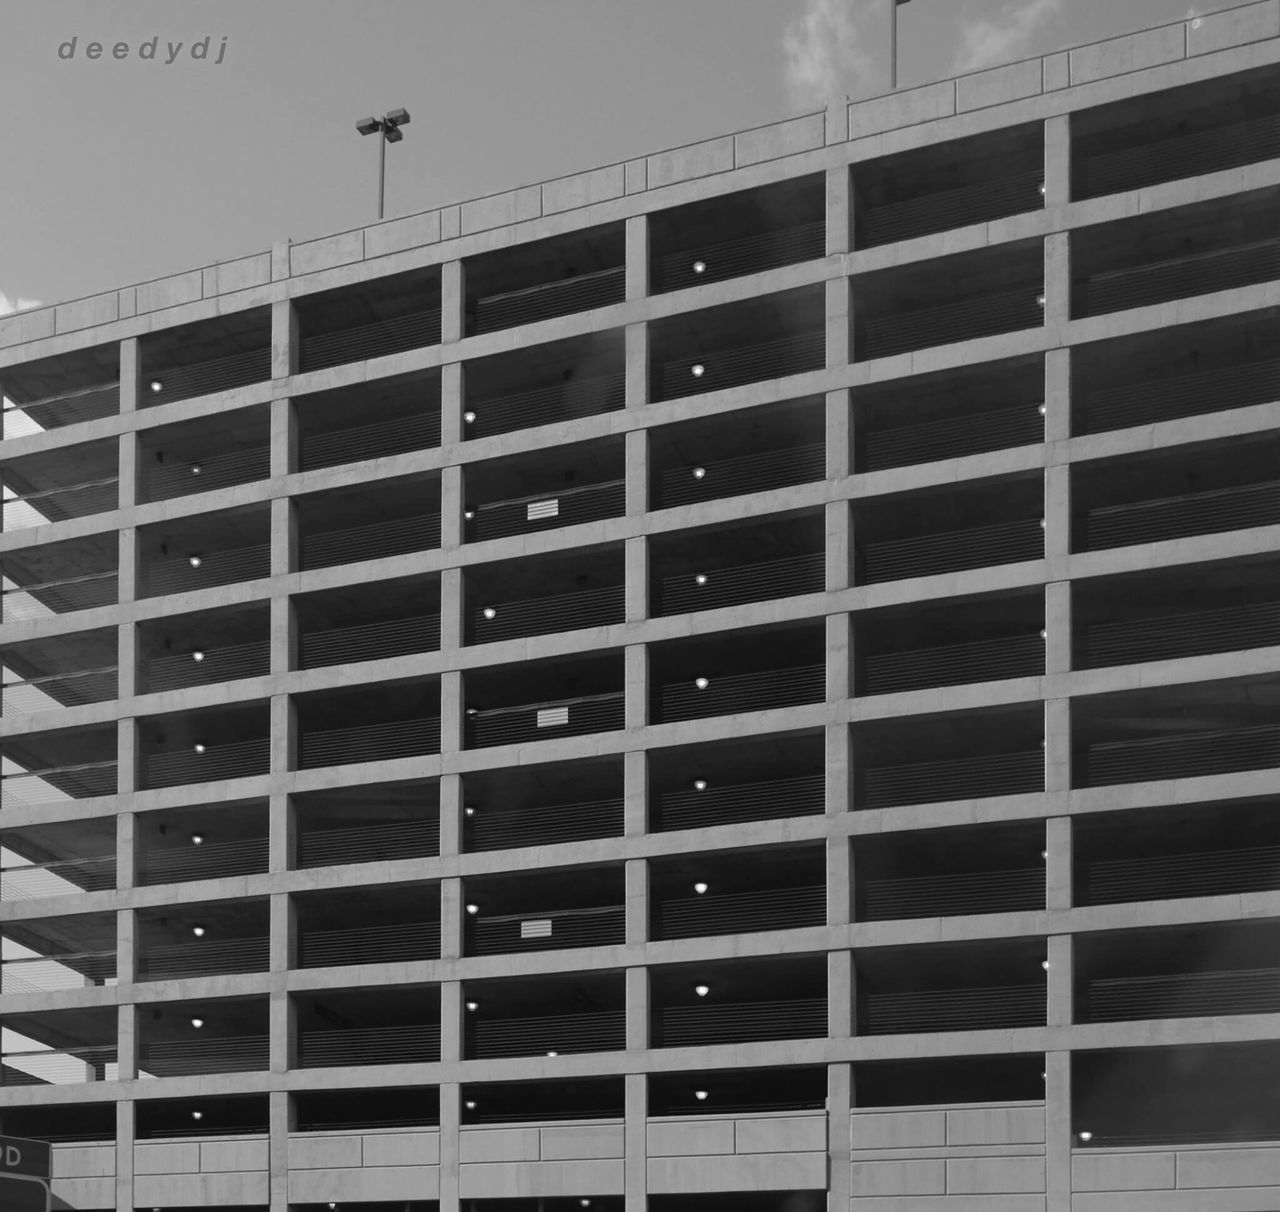 architecture, built structure, building exterior, modern, city, outdoors, day, no people, sky